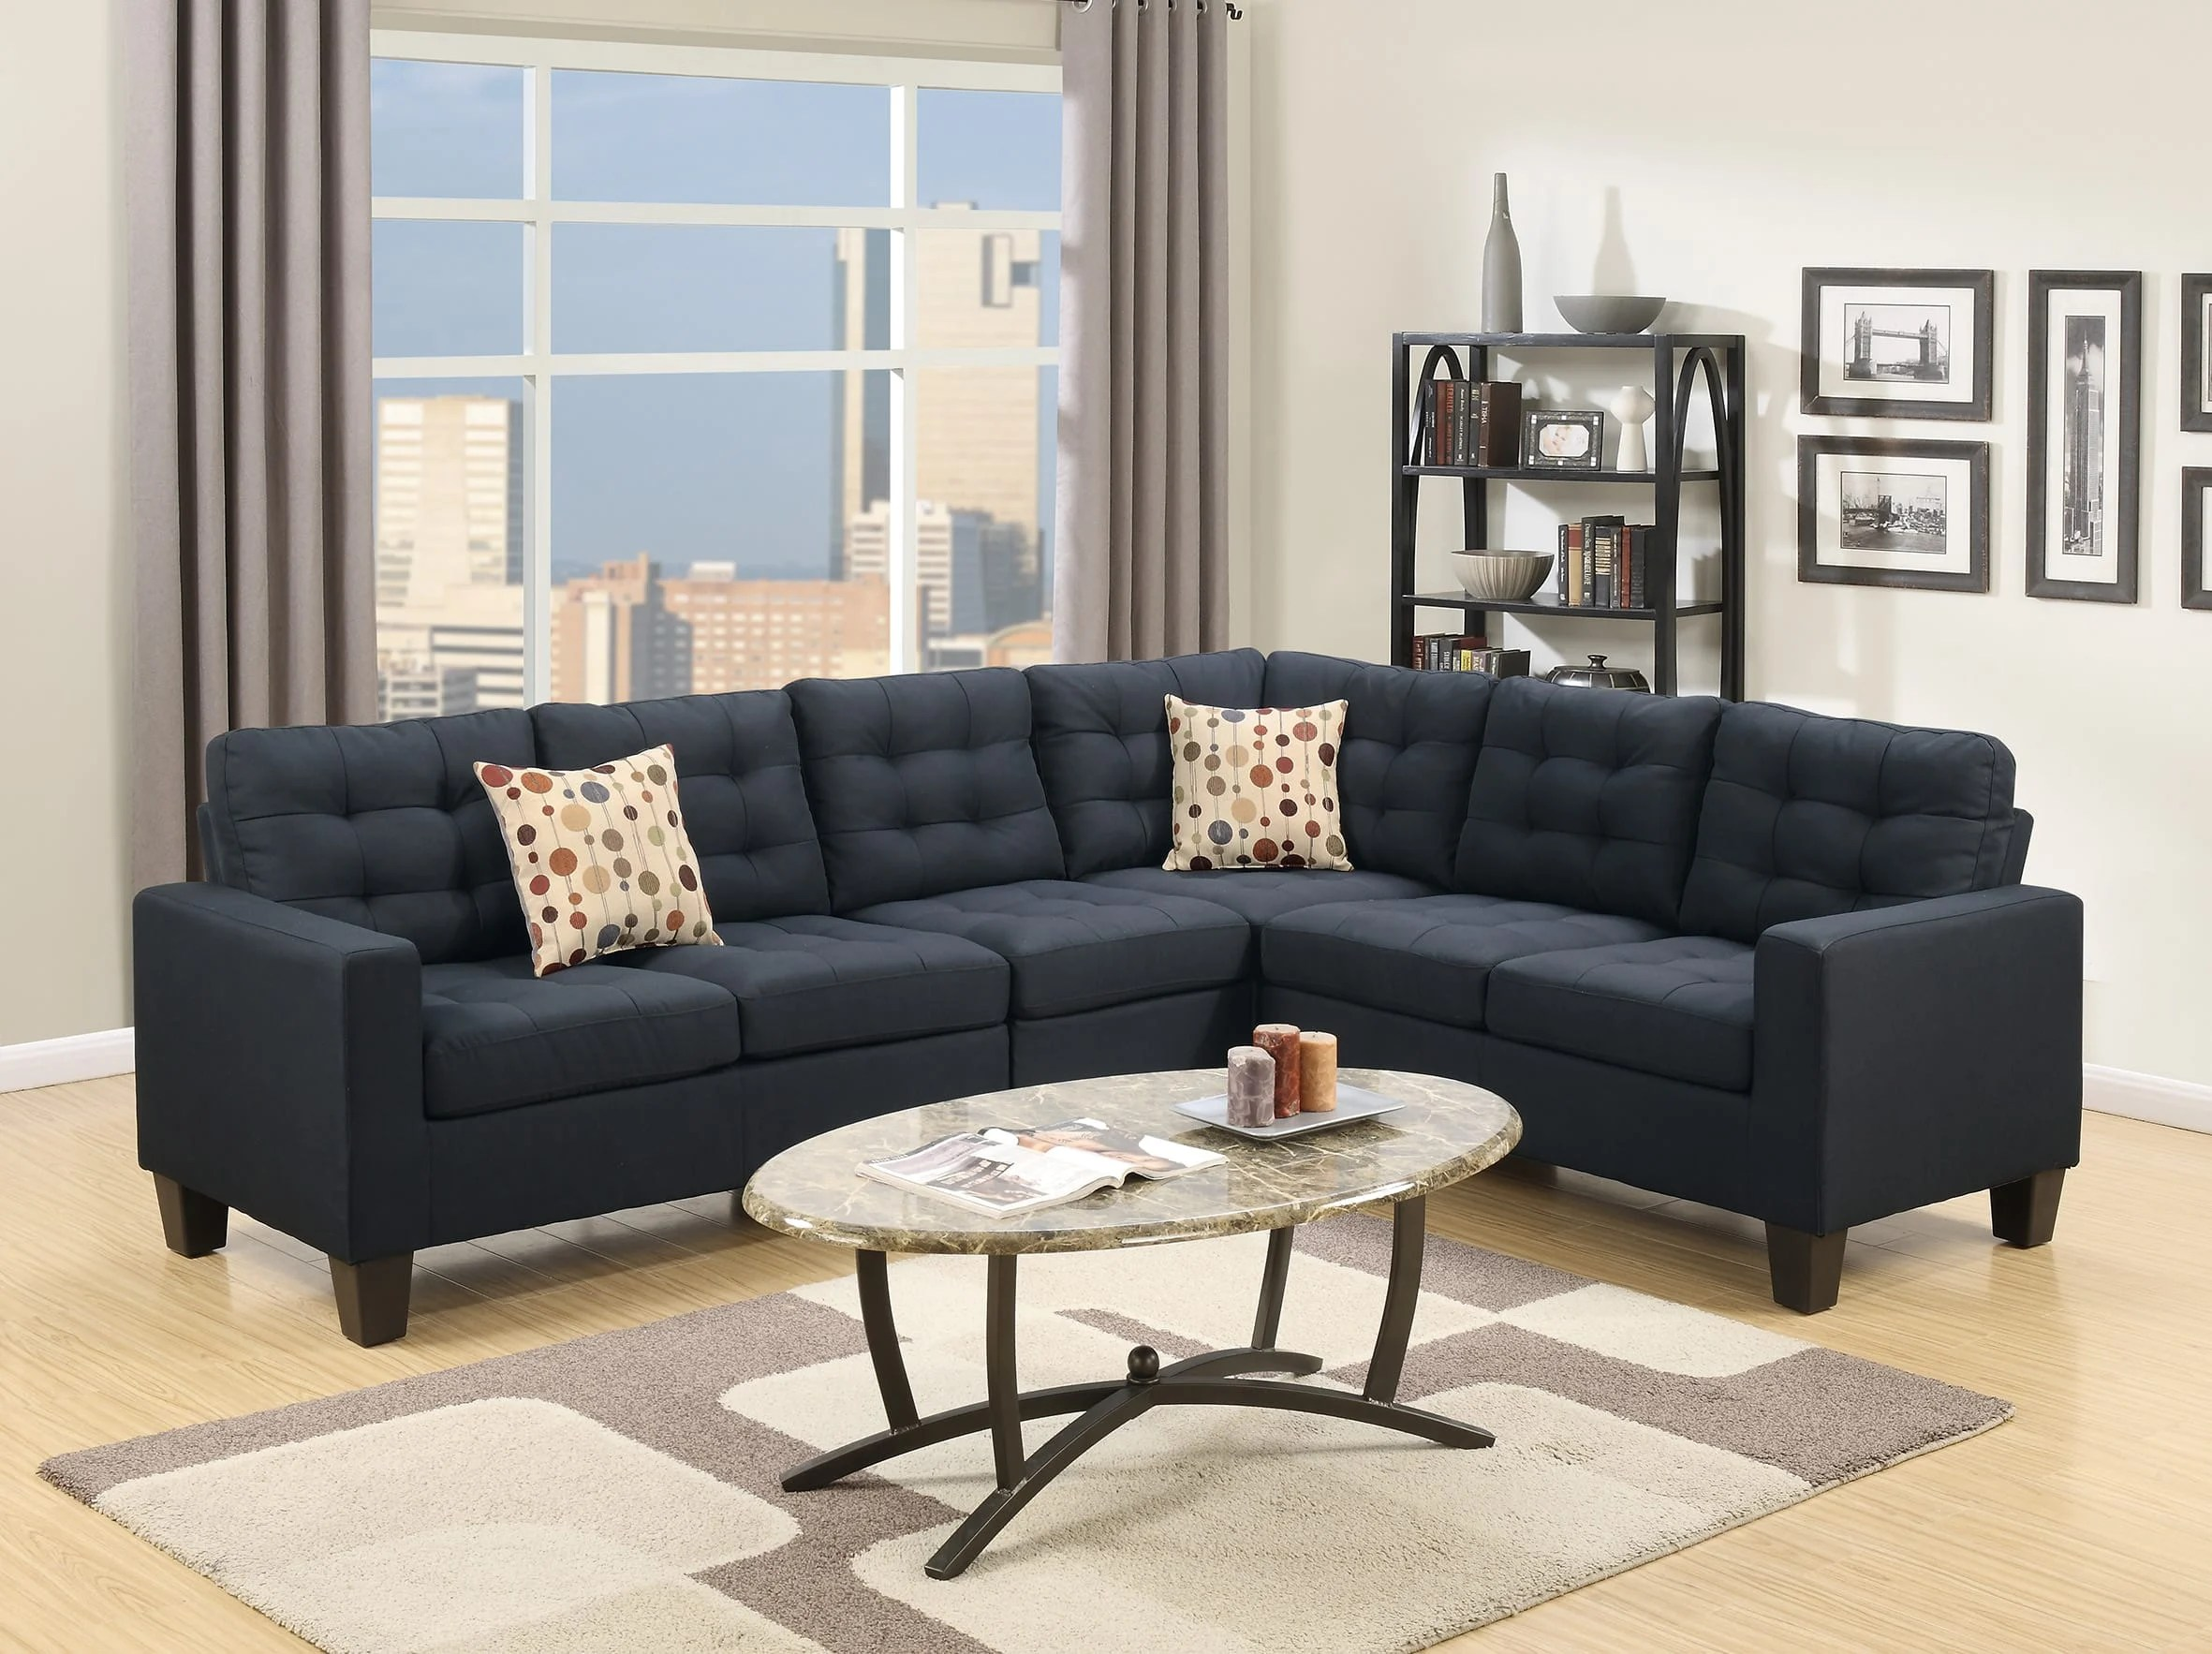 f6937 black sectional sofa by poundex